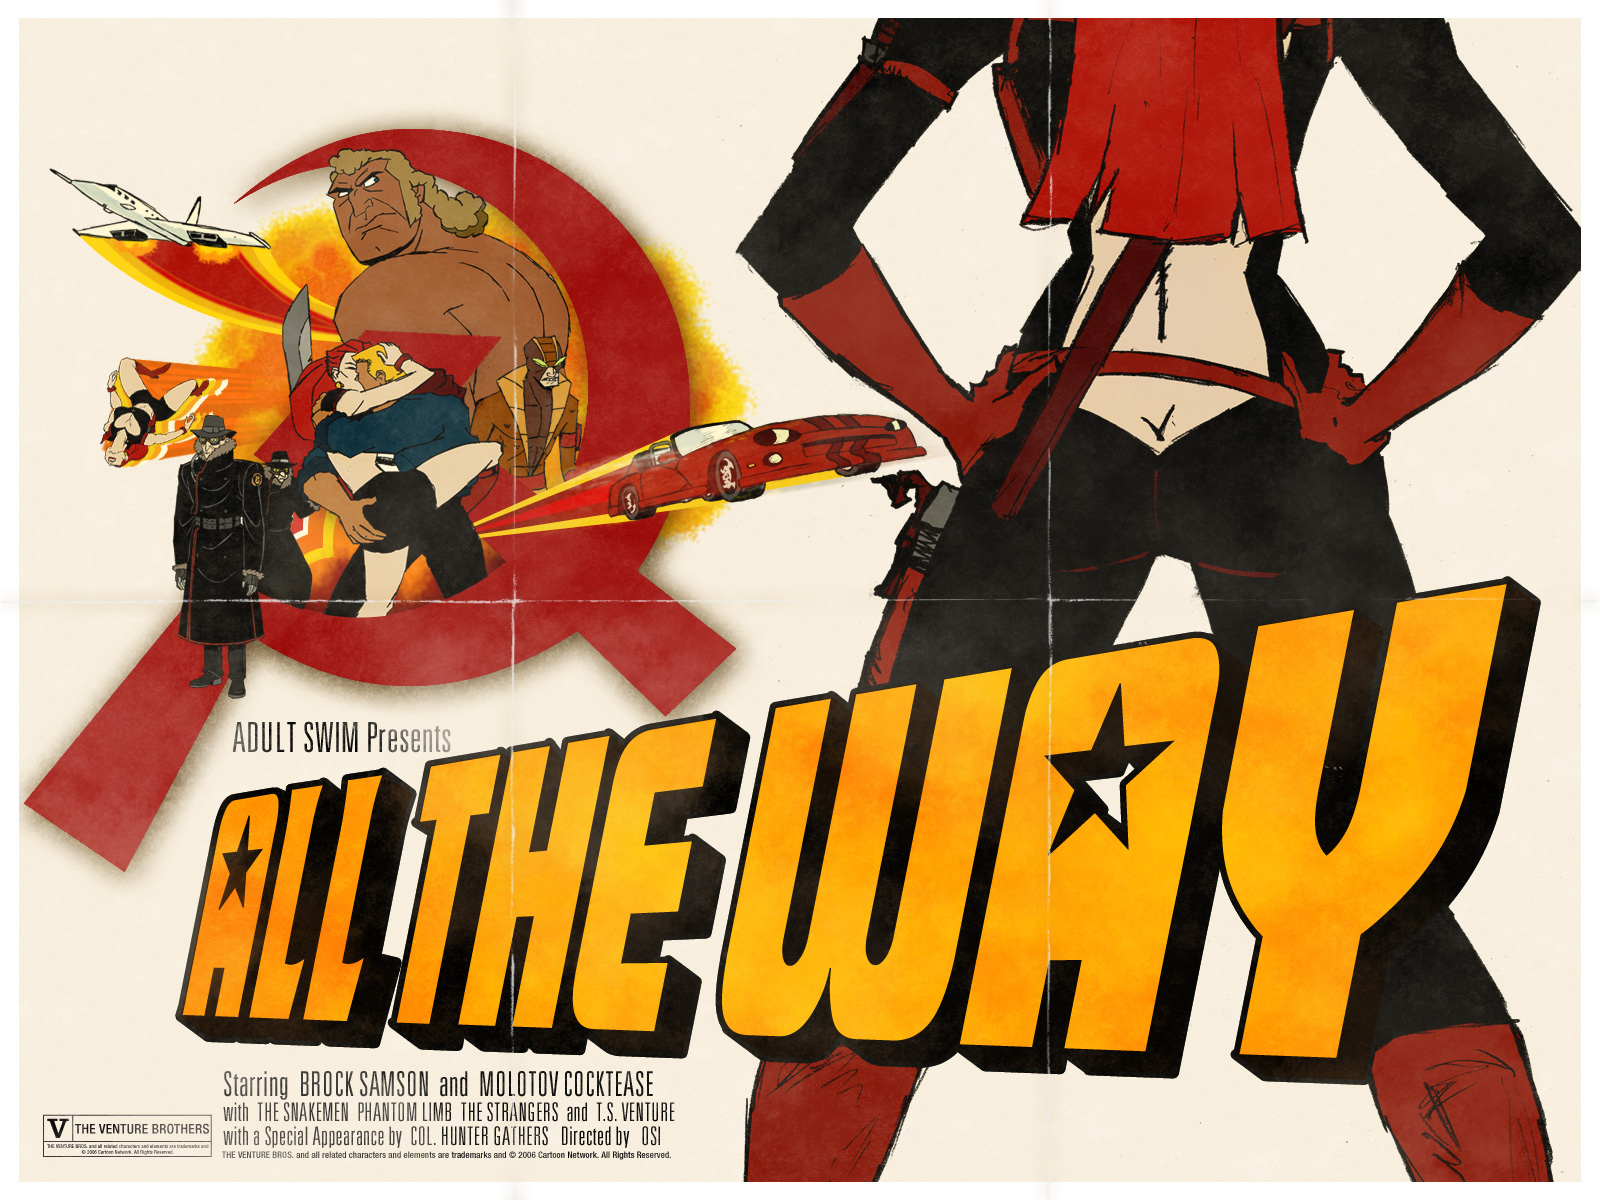 High Resolution Wallpaper | The Venture Brothers 1600x1200 px